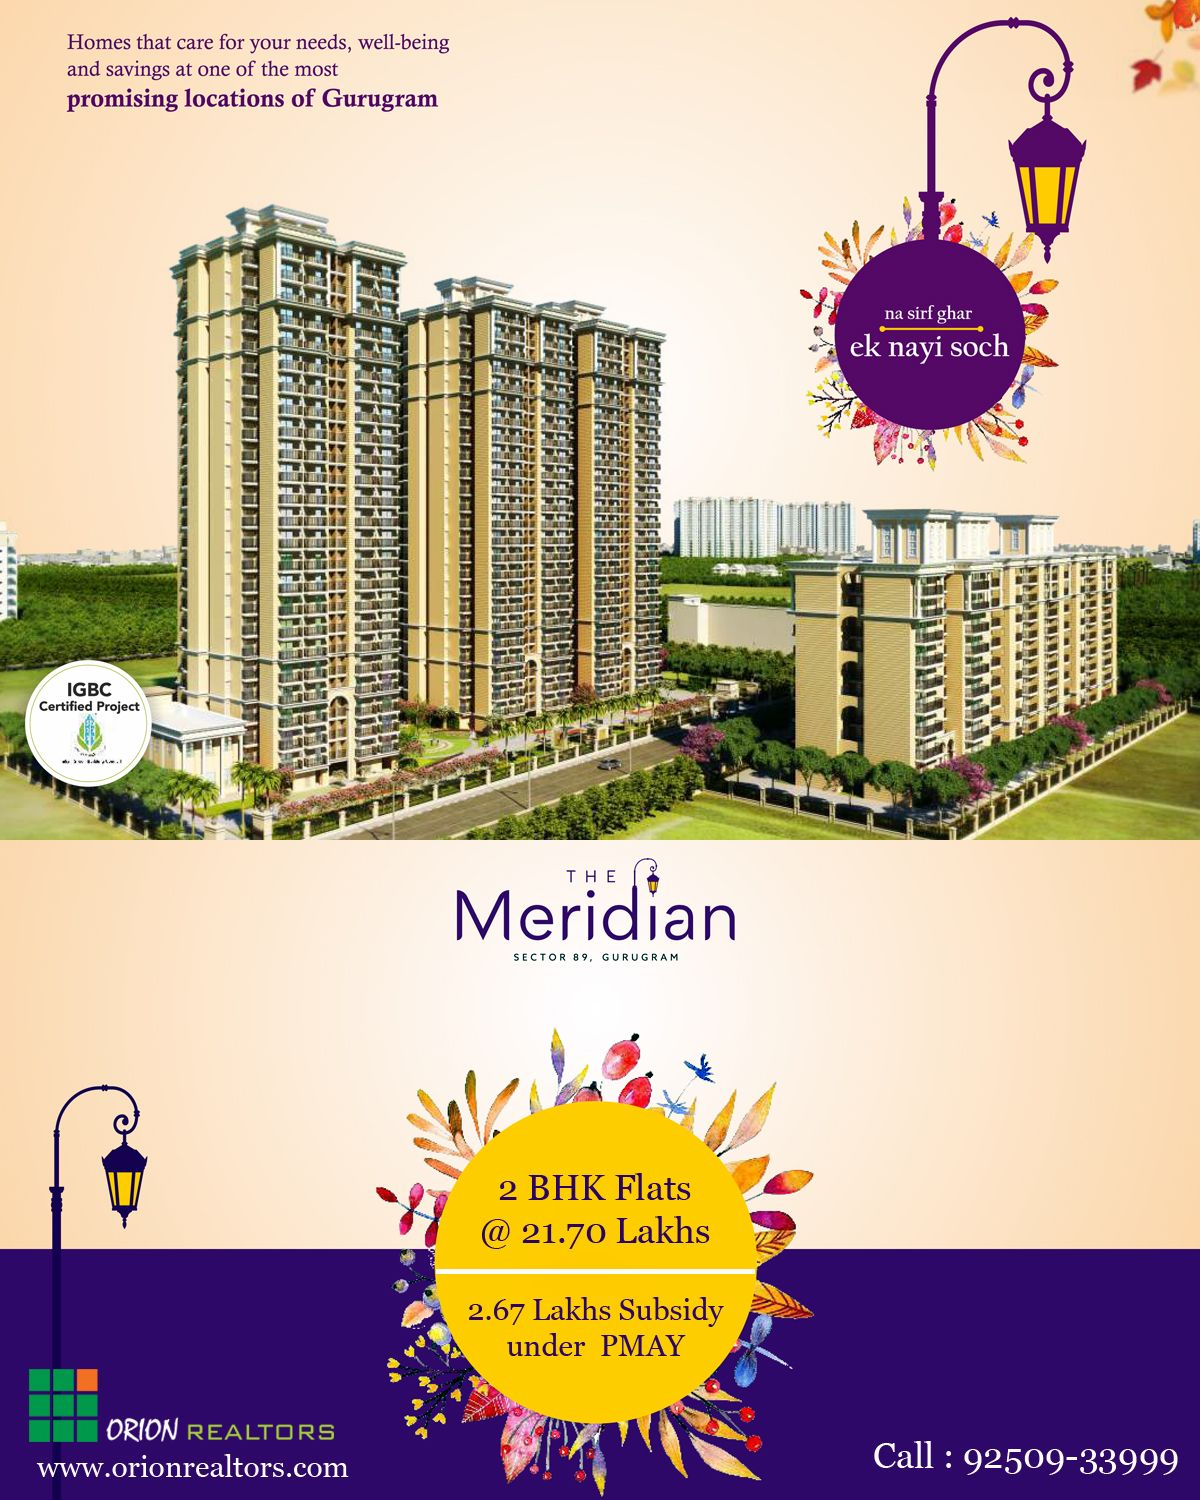 MRG World presents a new affordable housing project THE